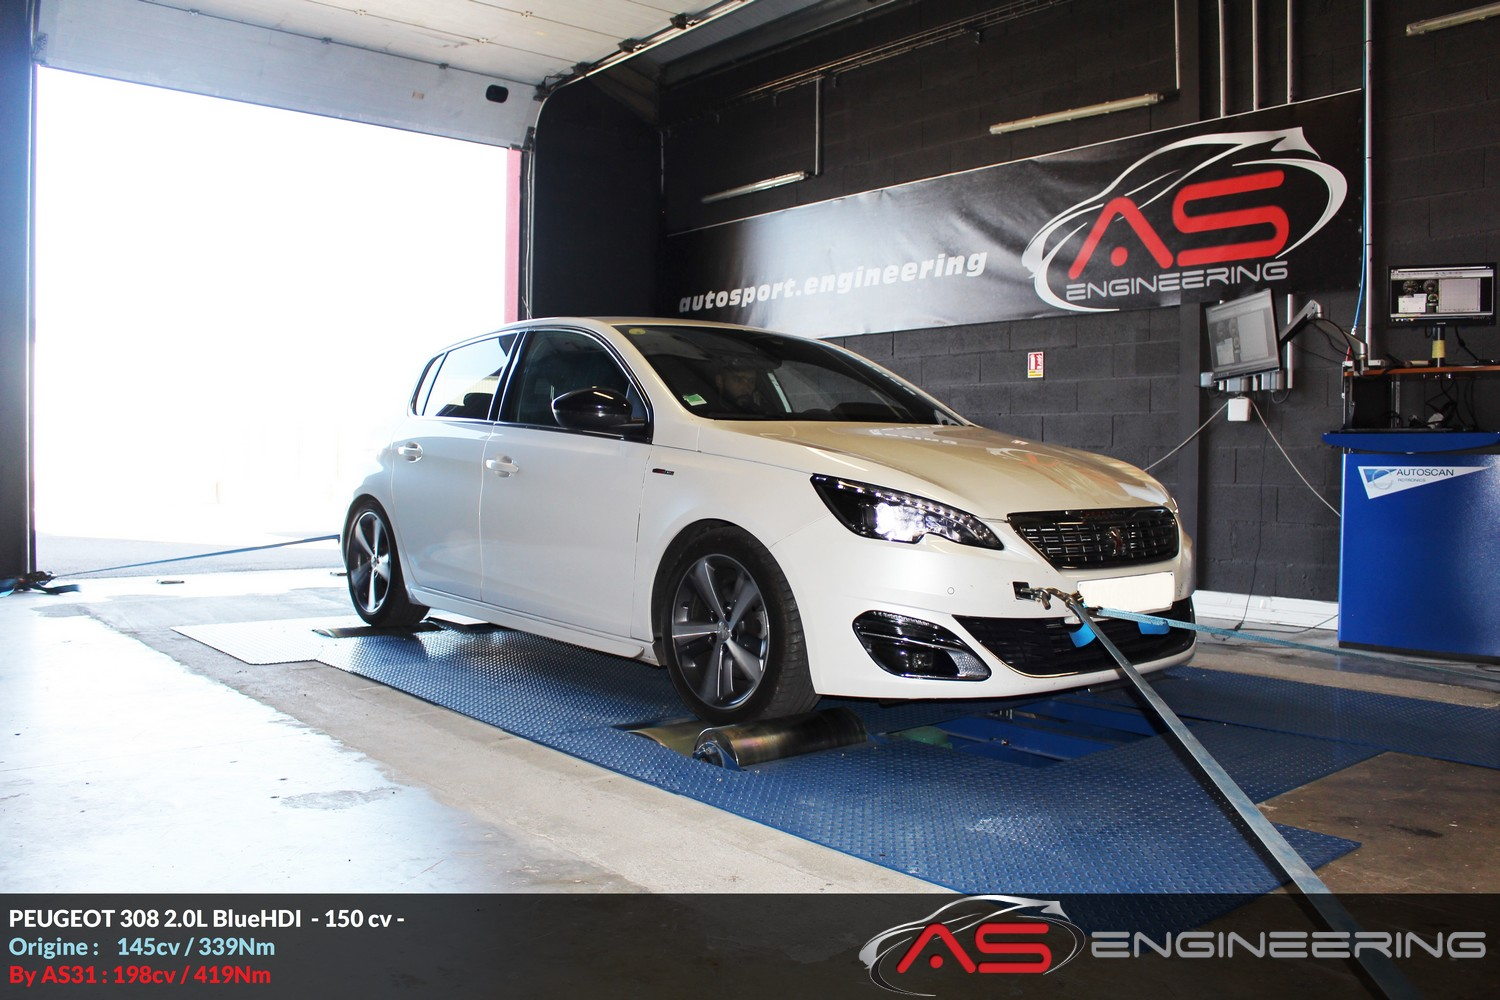 reprogrammation moteur peugeot 308 2 0l bluehdi 150cv as31 reprog moteur proche toulouse. Black Bedroom Furniture Sets. Home Design Ideas